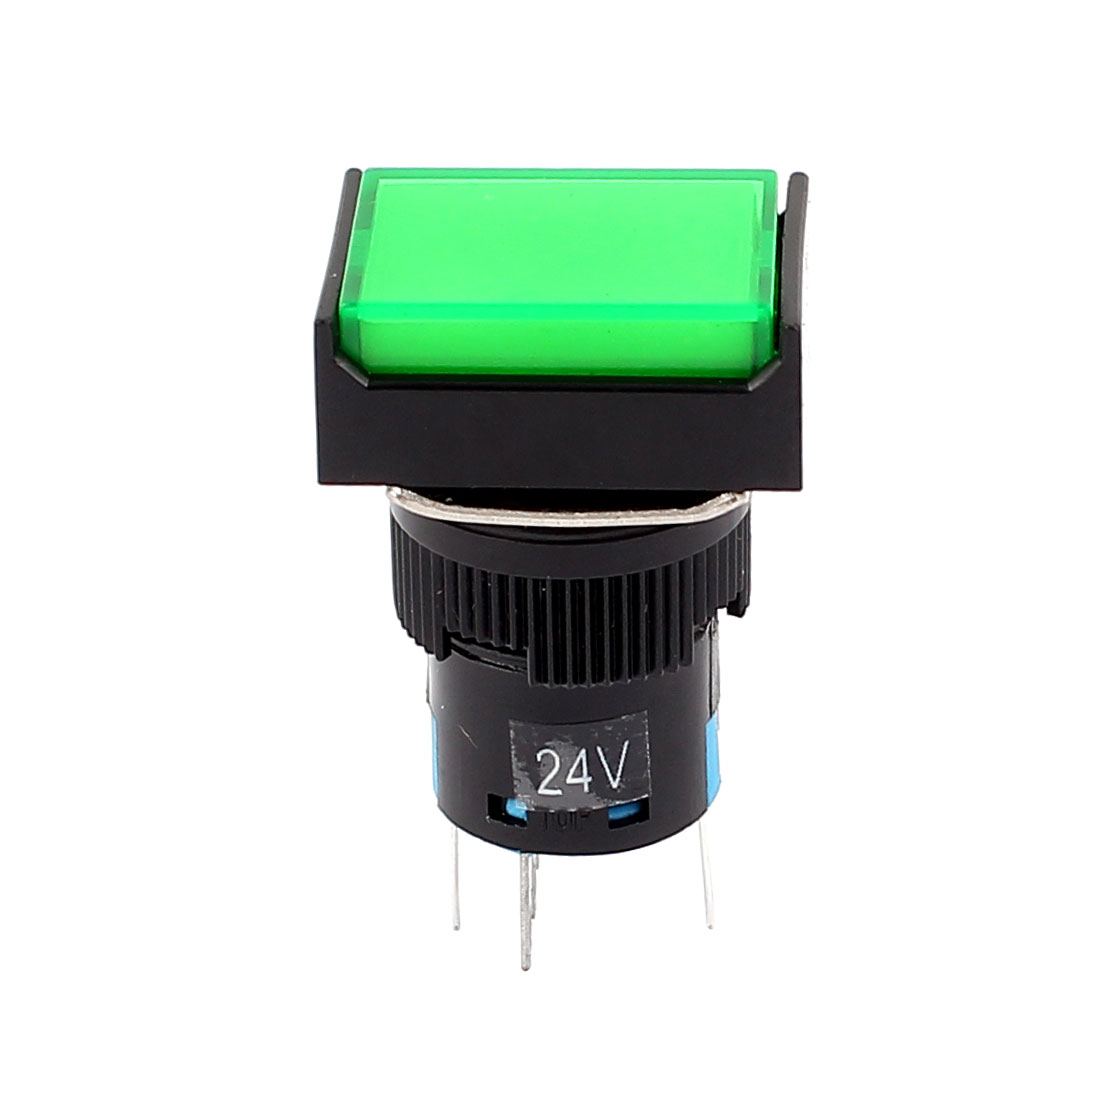 DC 24V SPST Green Indicator Lamp 5 Terminal 1NO 1NC Style Momentary Push Button Pushbutton Switch